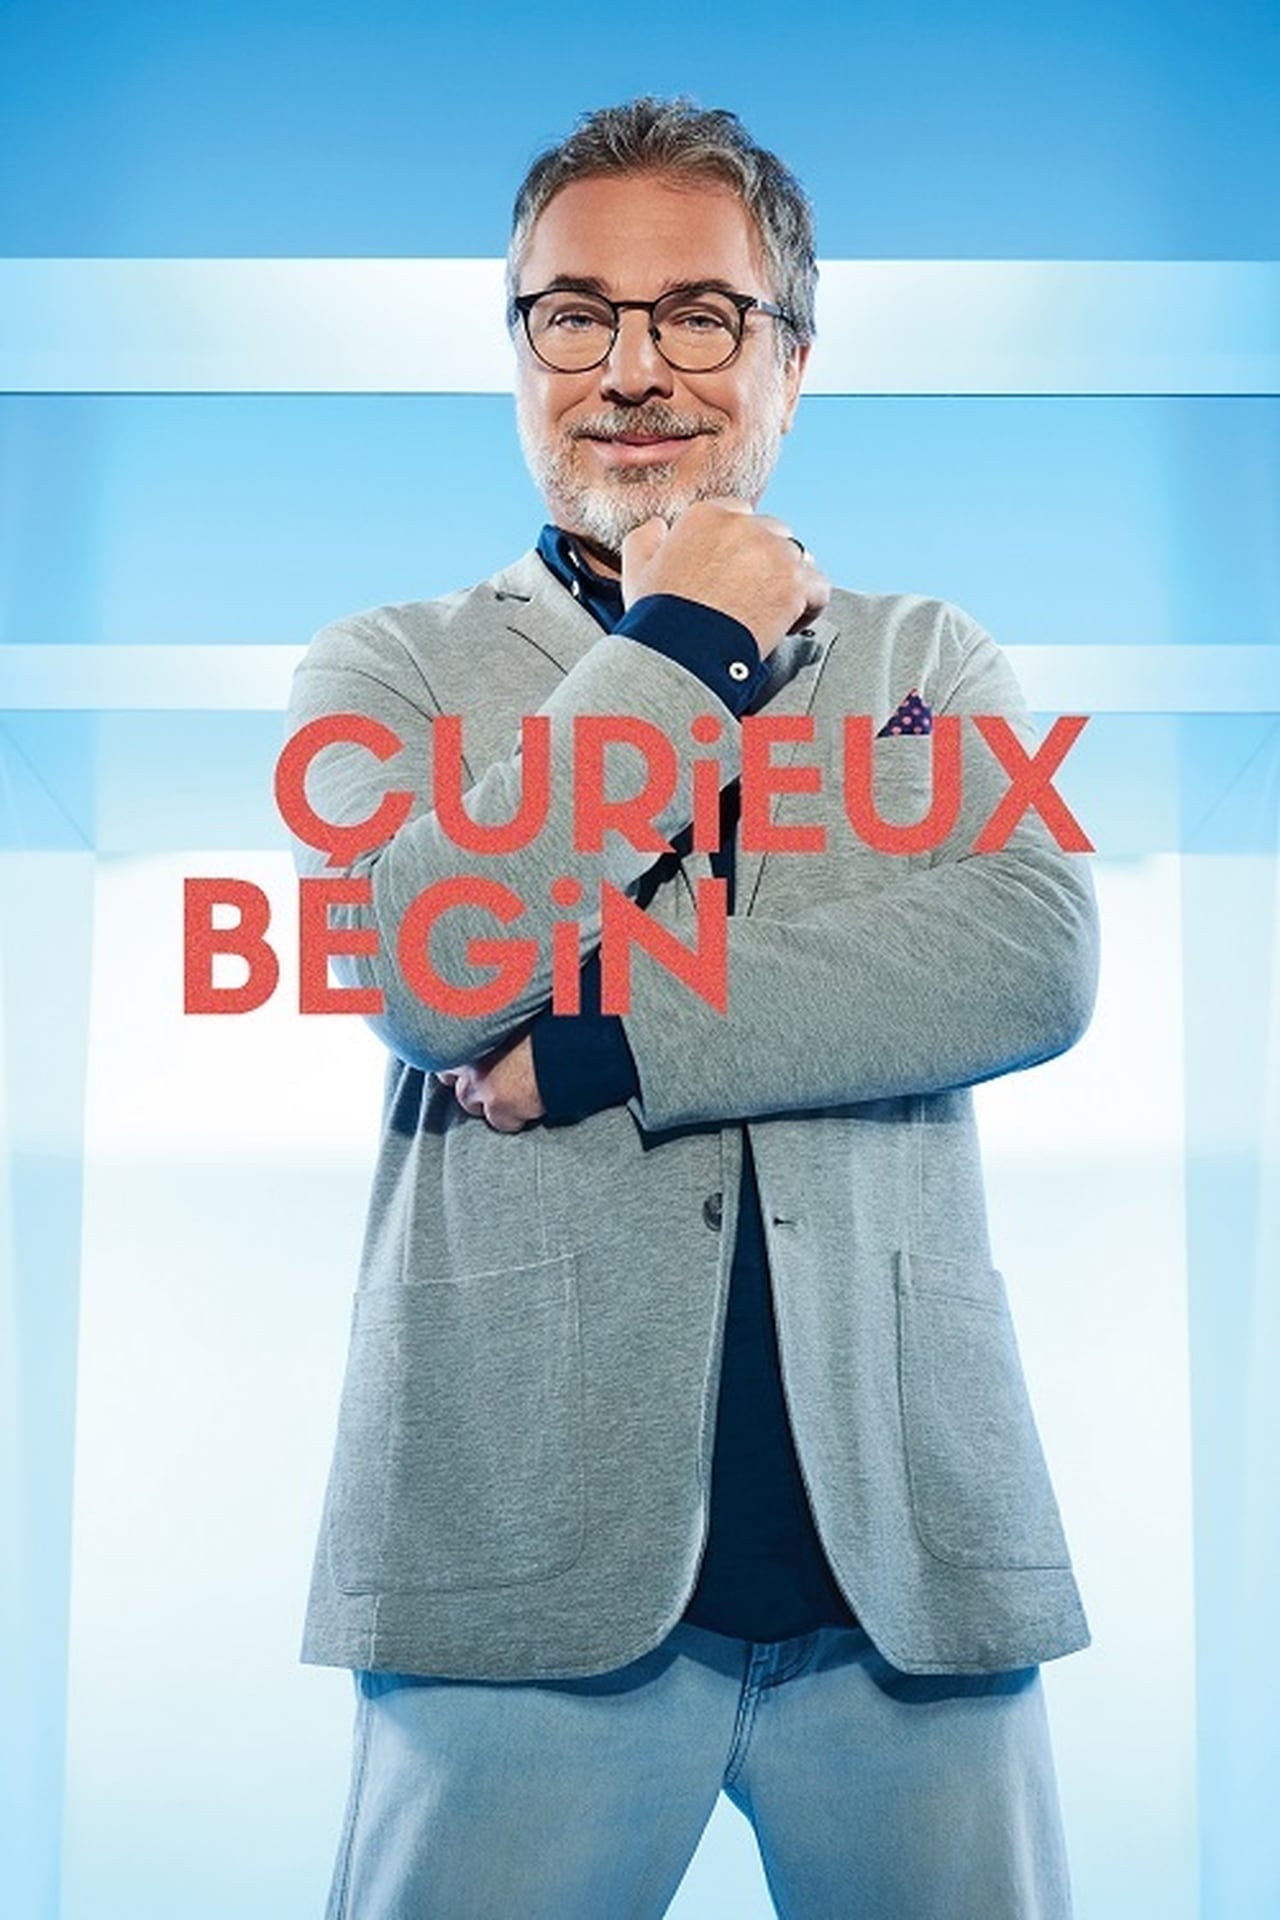 Putlocker Curieux Bégin Season 2 (2008)